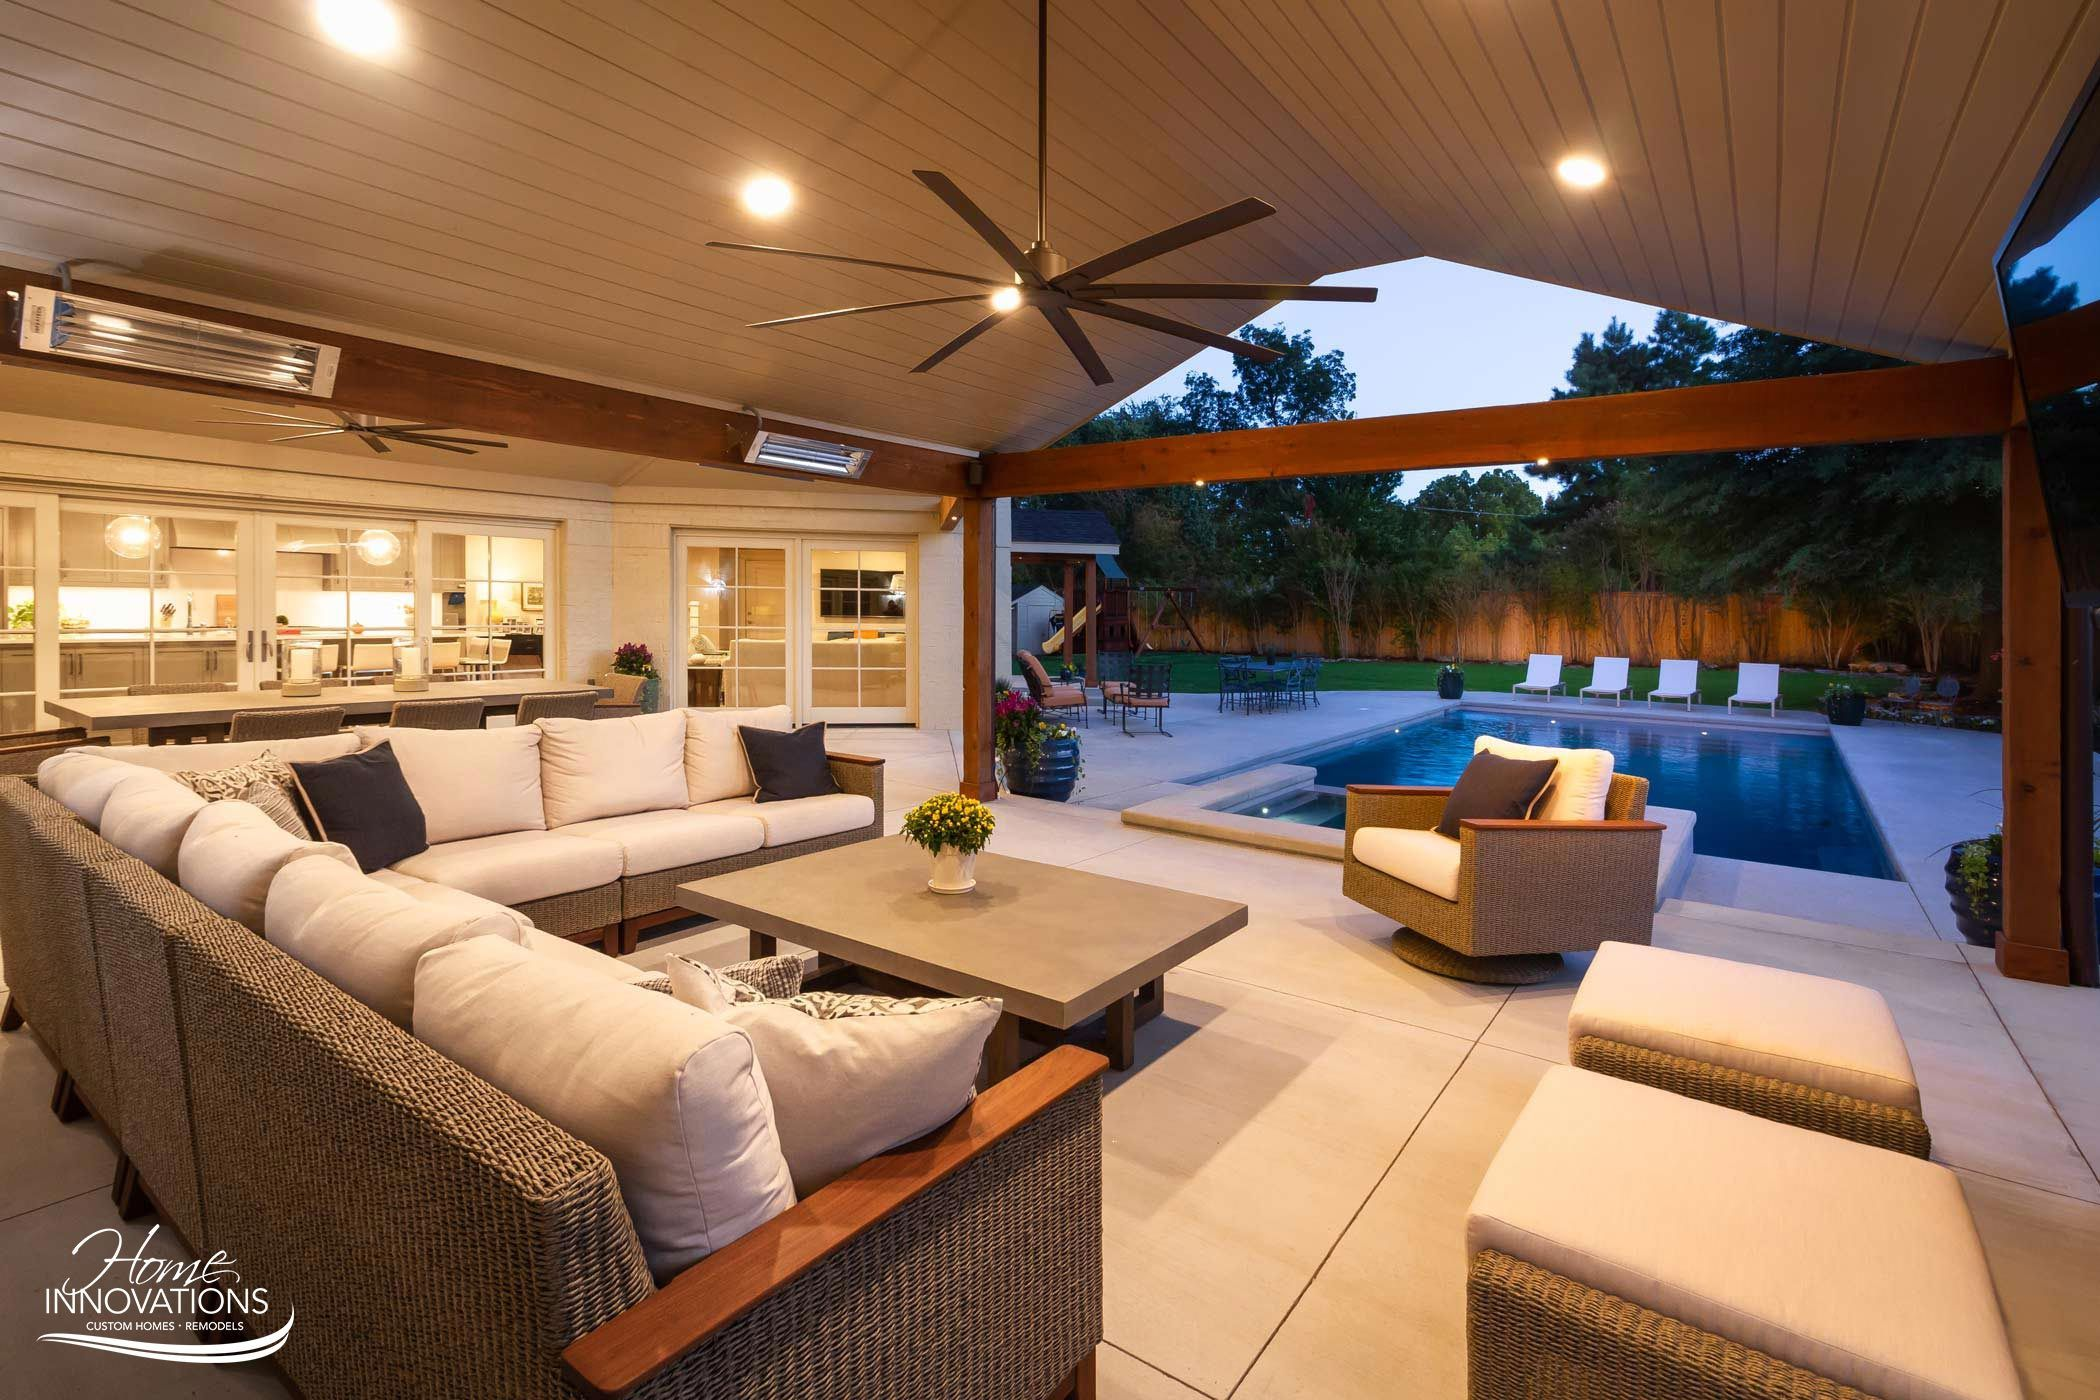 Outdoor Remodel | Tulsa Oklahoma - swimming pool, hot tub ... on Outdoor Living Pool And Spa id=76350